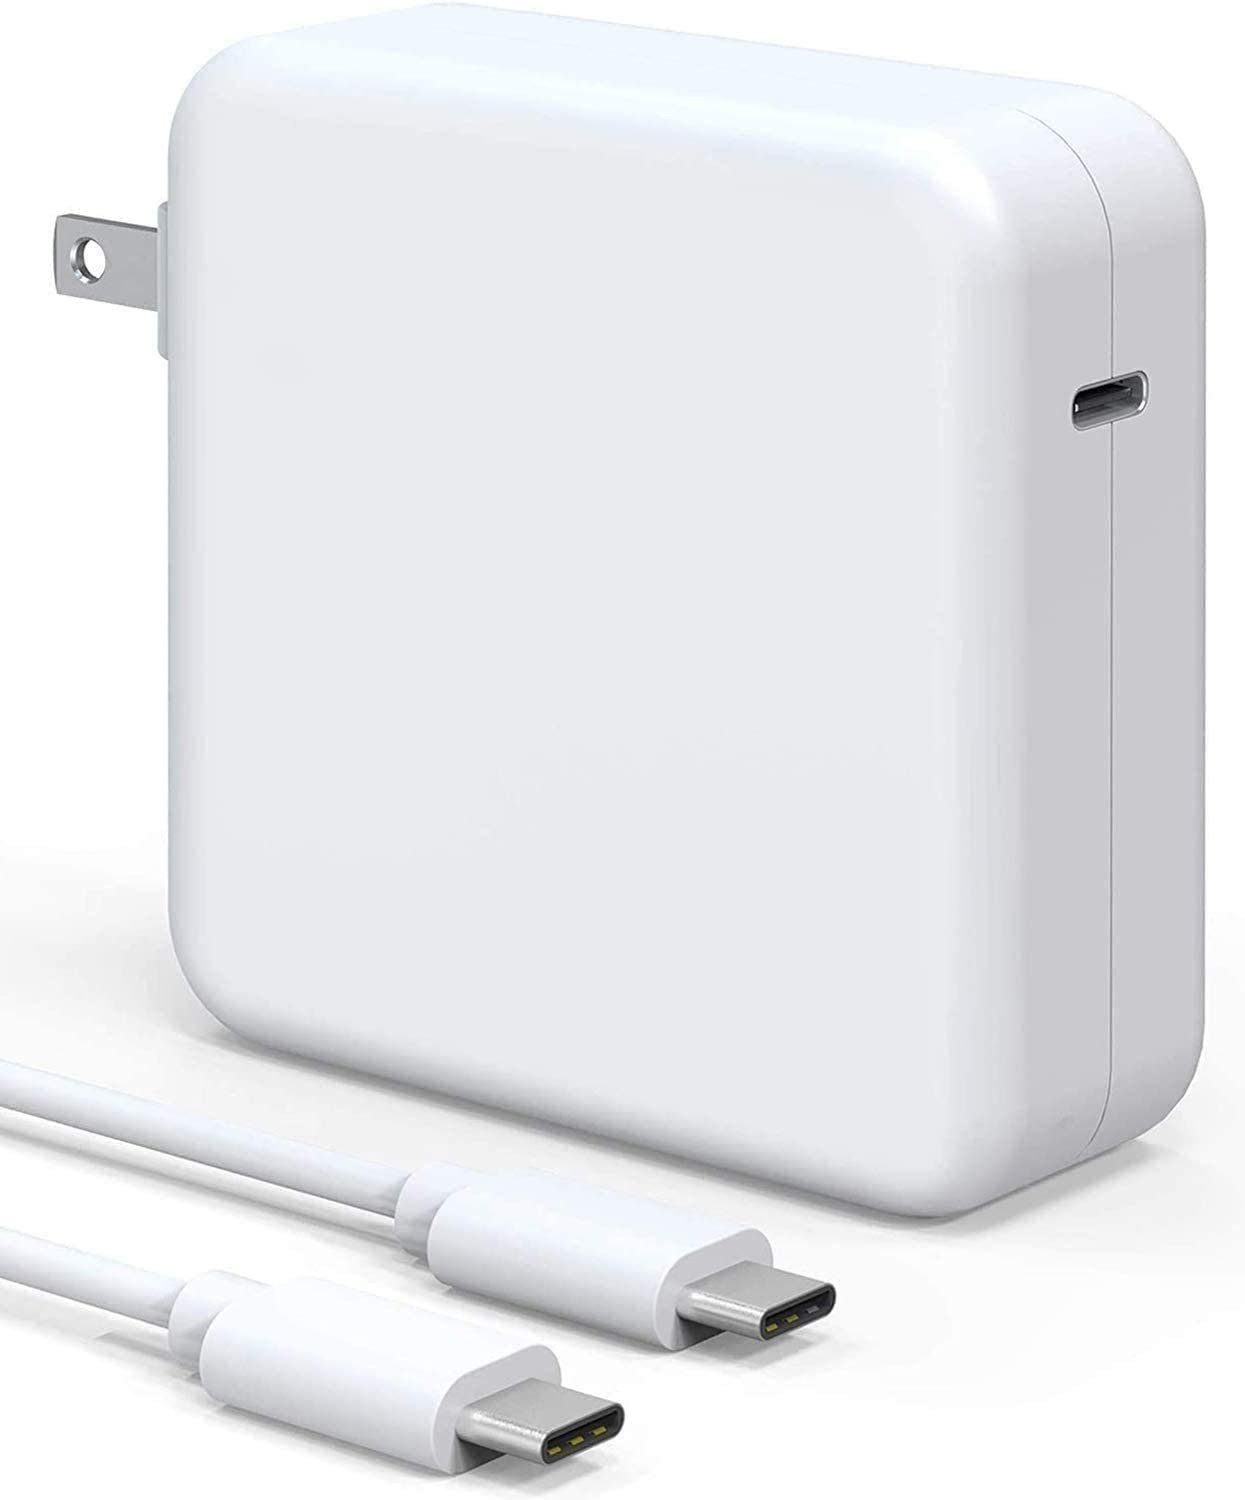 96W Mac Book Pro Charger USB C Power Adapter, Compatible with MacBook Pro & Air Fast Charger, Replacement Type c Charger PD Power Delivery Fast Charging for MacBook Pro 13